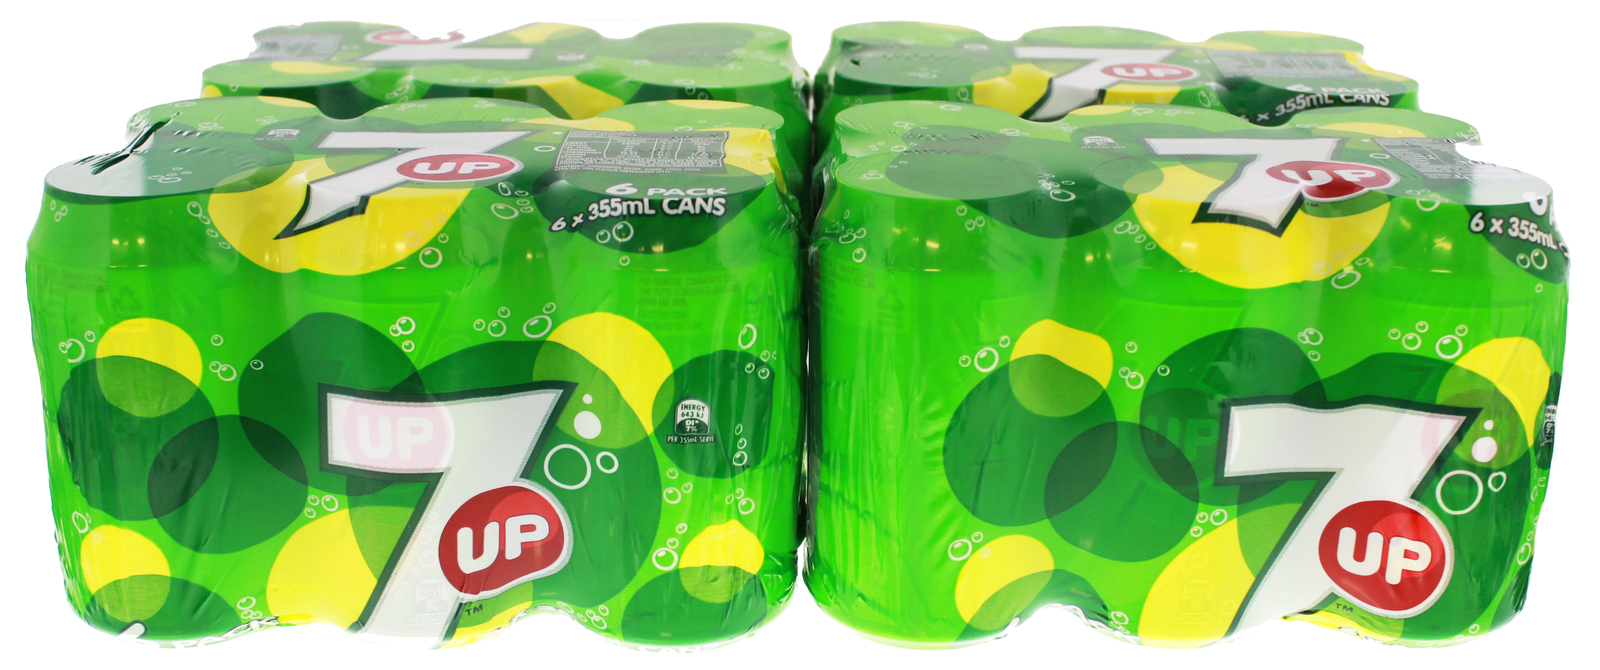 7UP Can (355ml) image